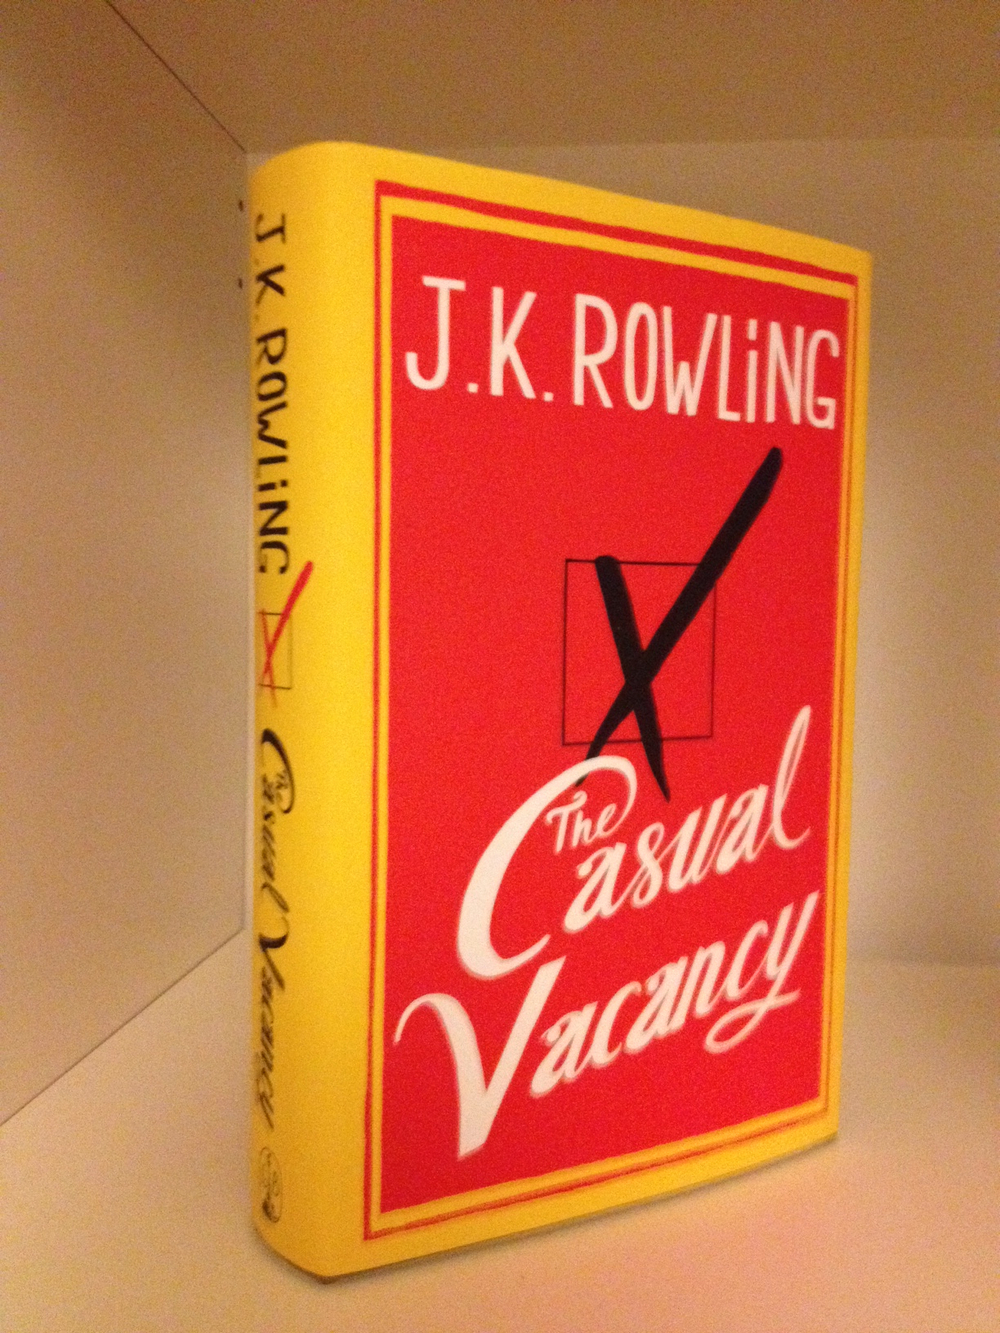 J K Rowling Book for Christmas - Savannah Page